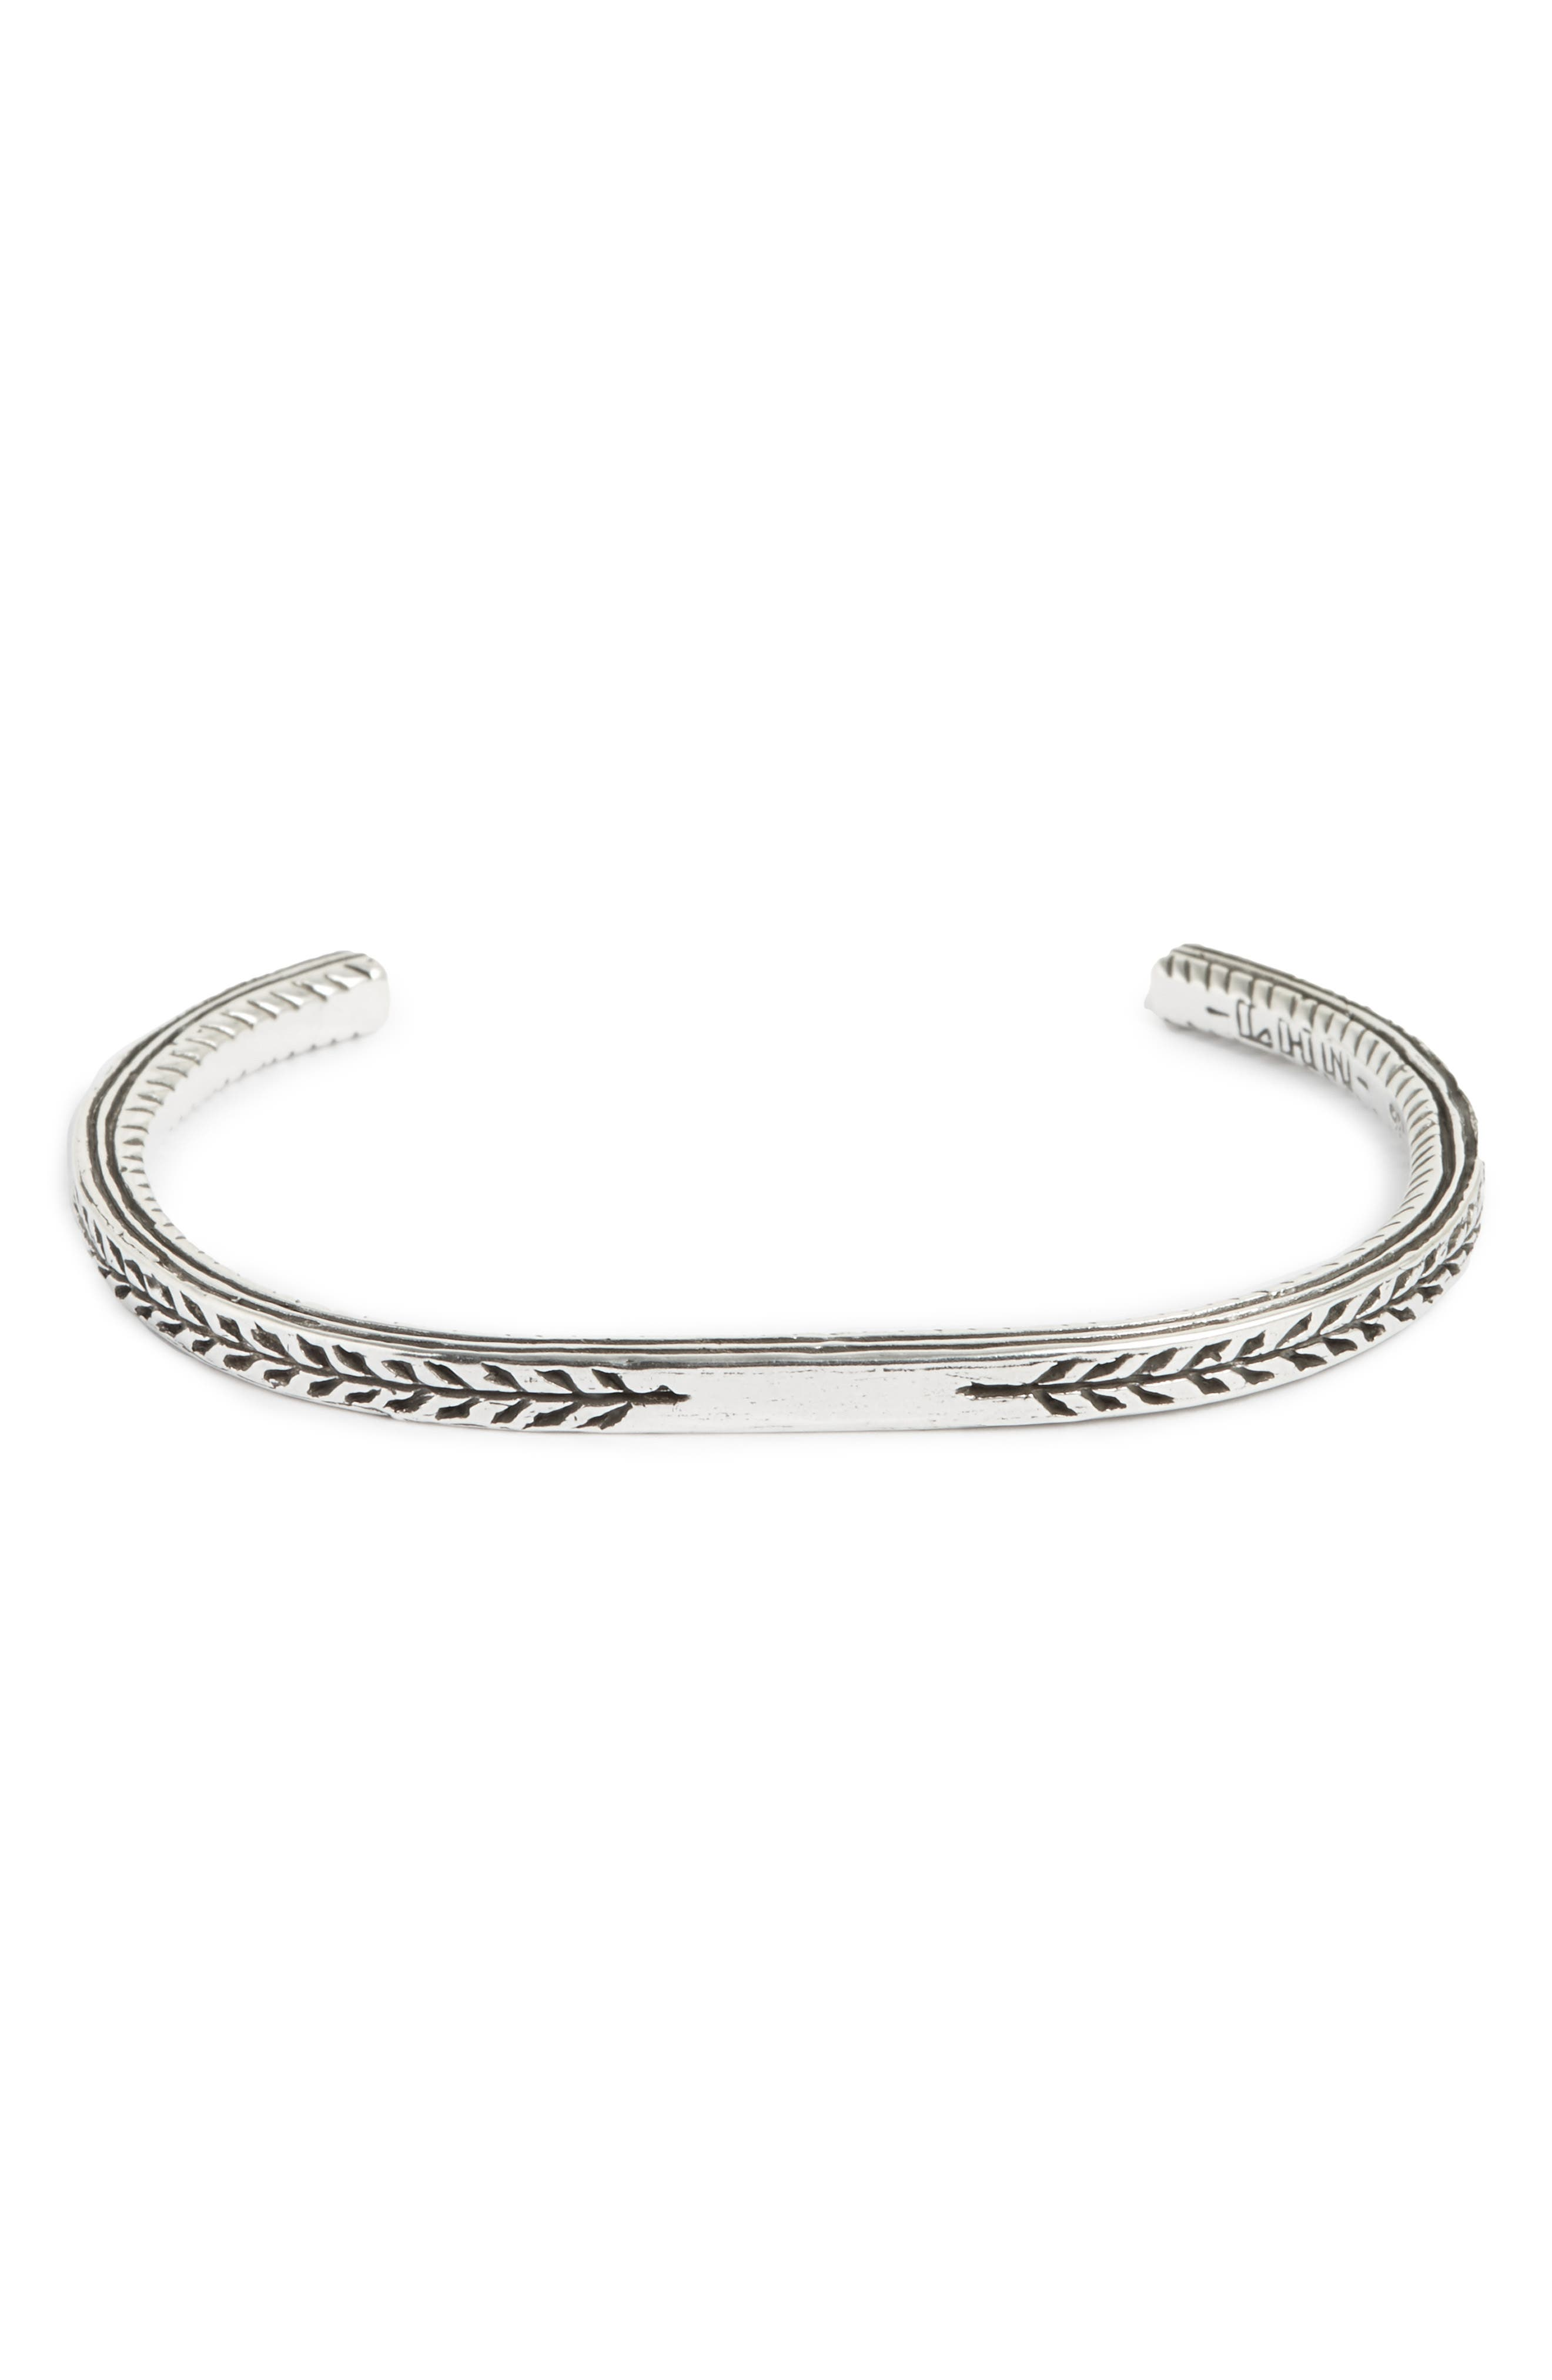 Pantheon Sterling Silver Cuff Bracelet,                         Main,                         color, Silver